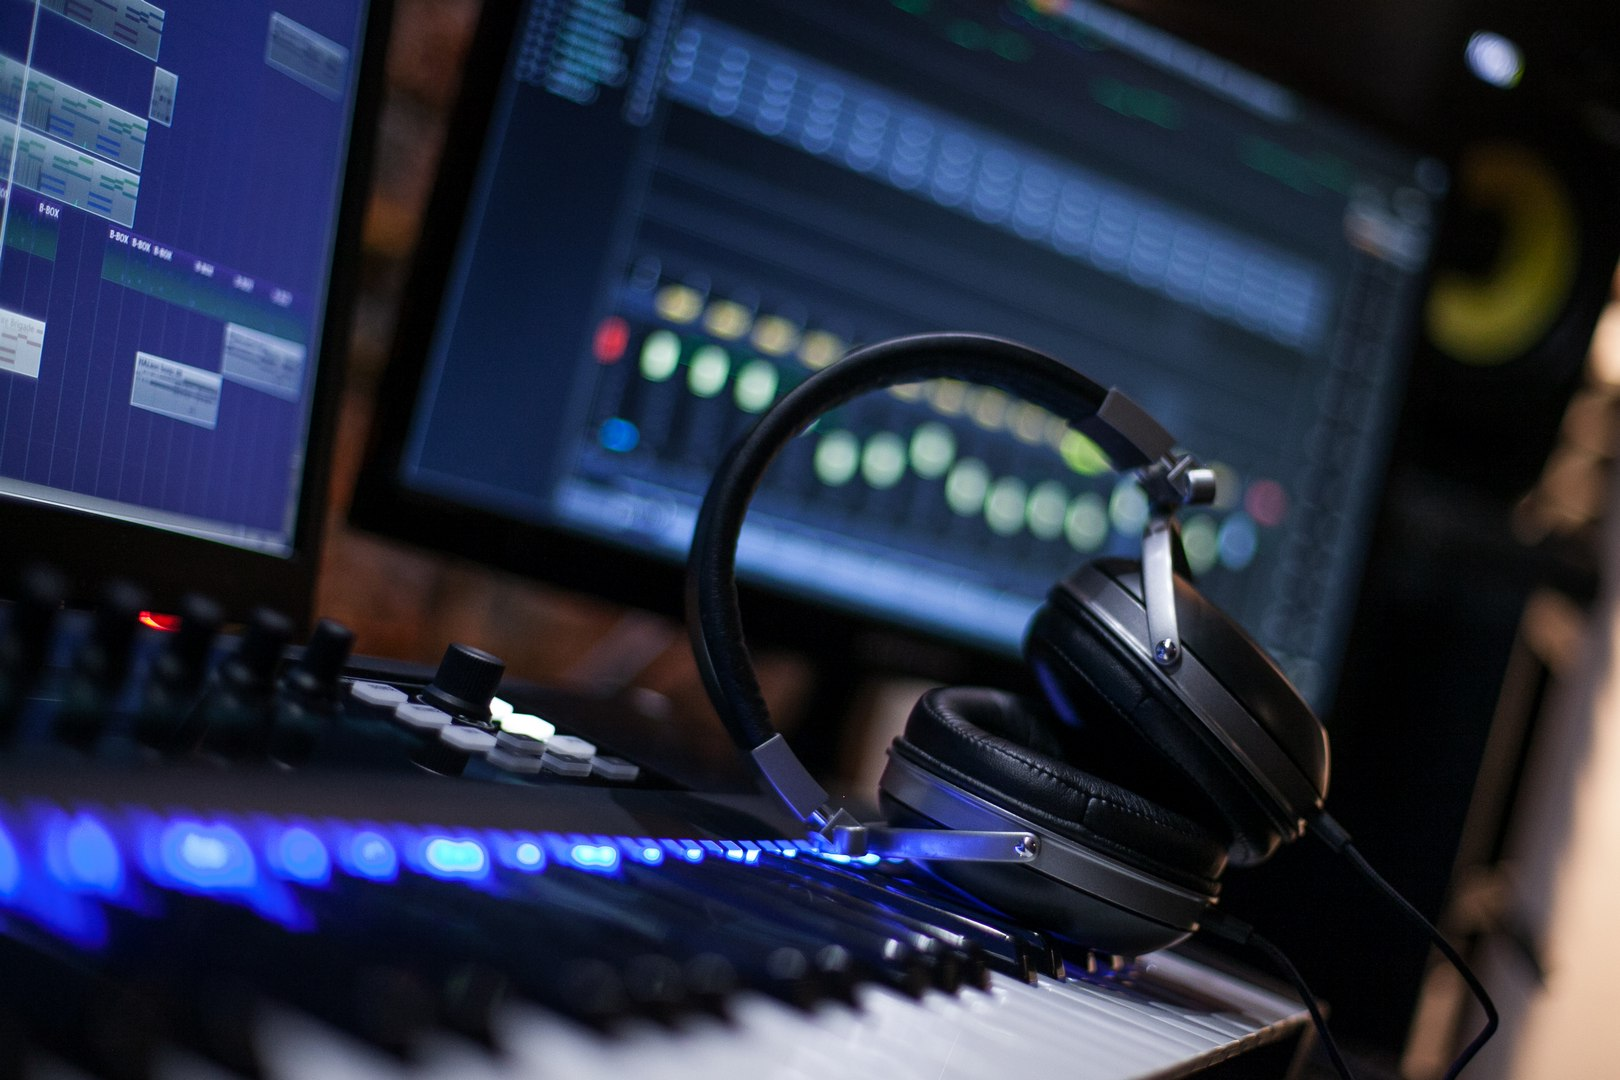 Editing a beat in Cubase with Komplete Kontrol S49